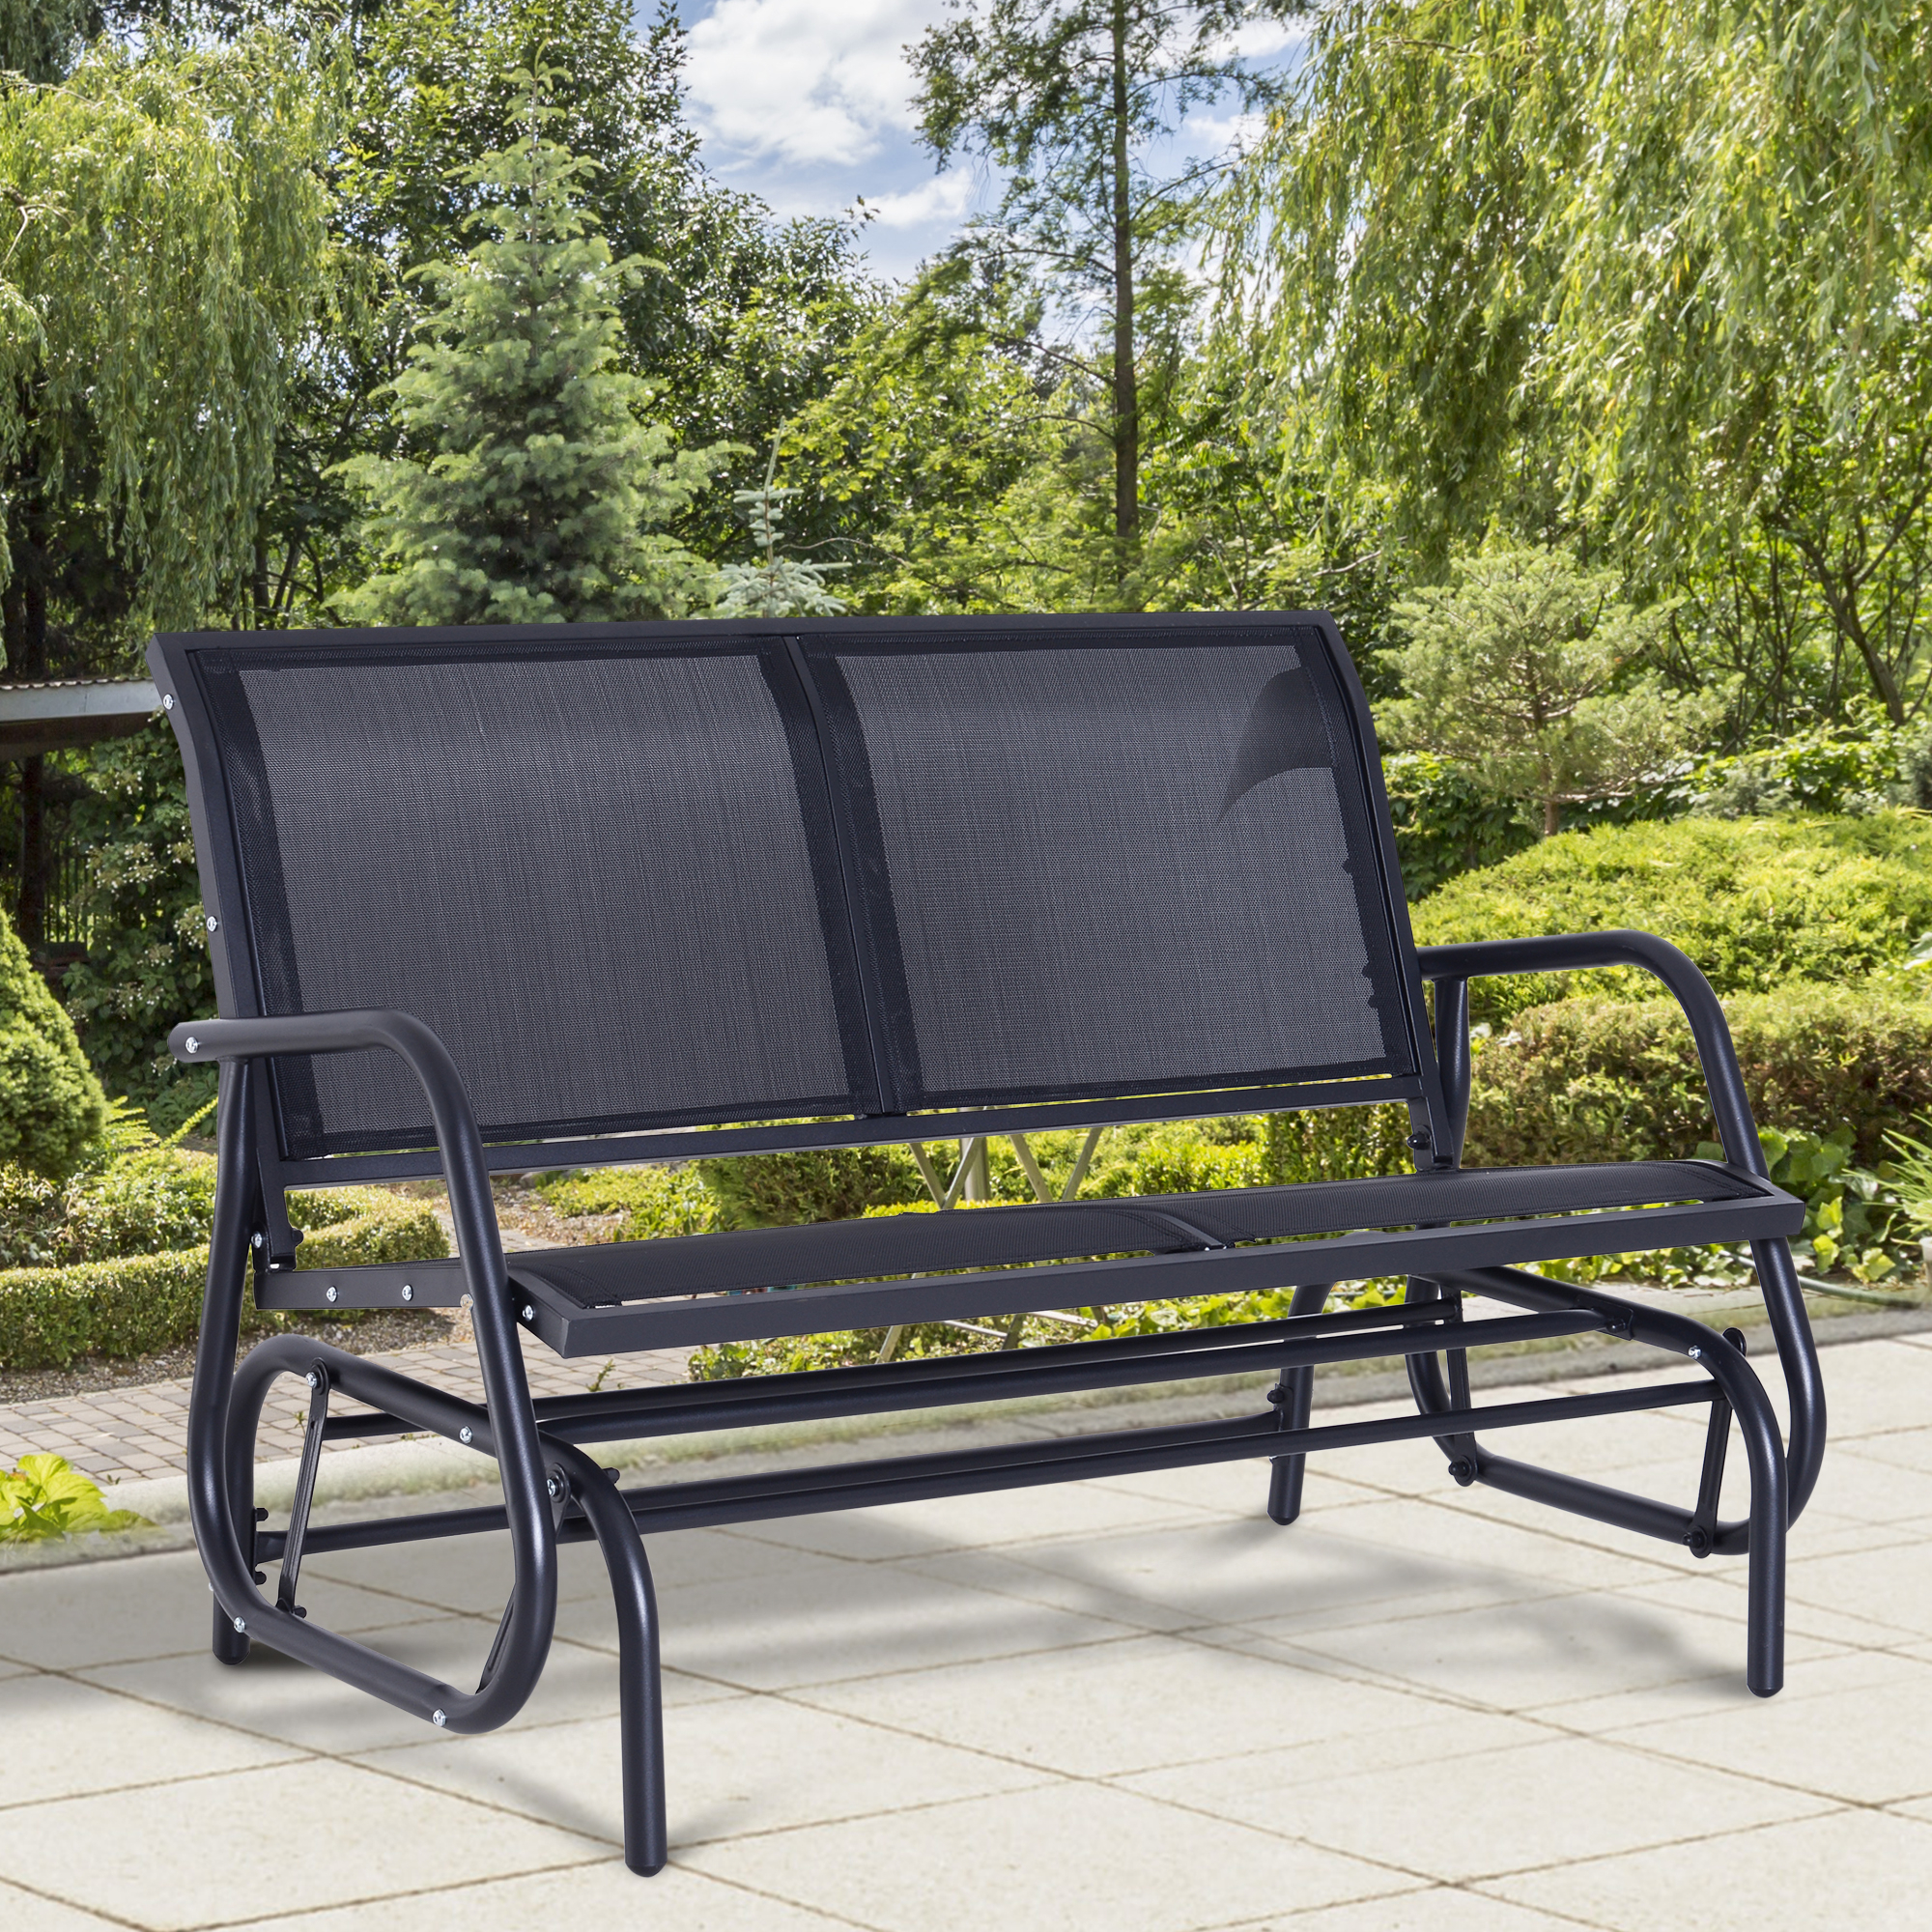 Details About Outsunny Patio Double 2 Person Glider Bench Rocker Porch Love  Seat Swing Chair Throughout 2 Person Antique Black Iron Outdoor Gliders (Image 12 of 25)